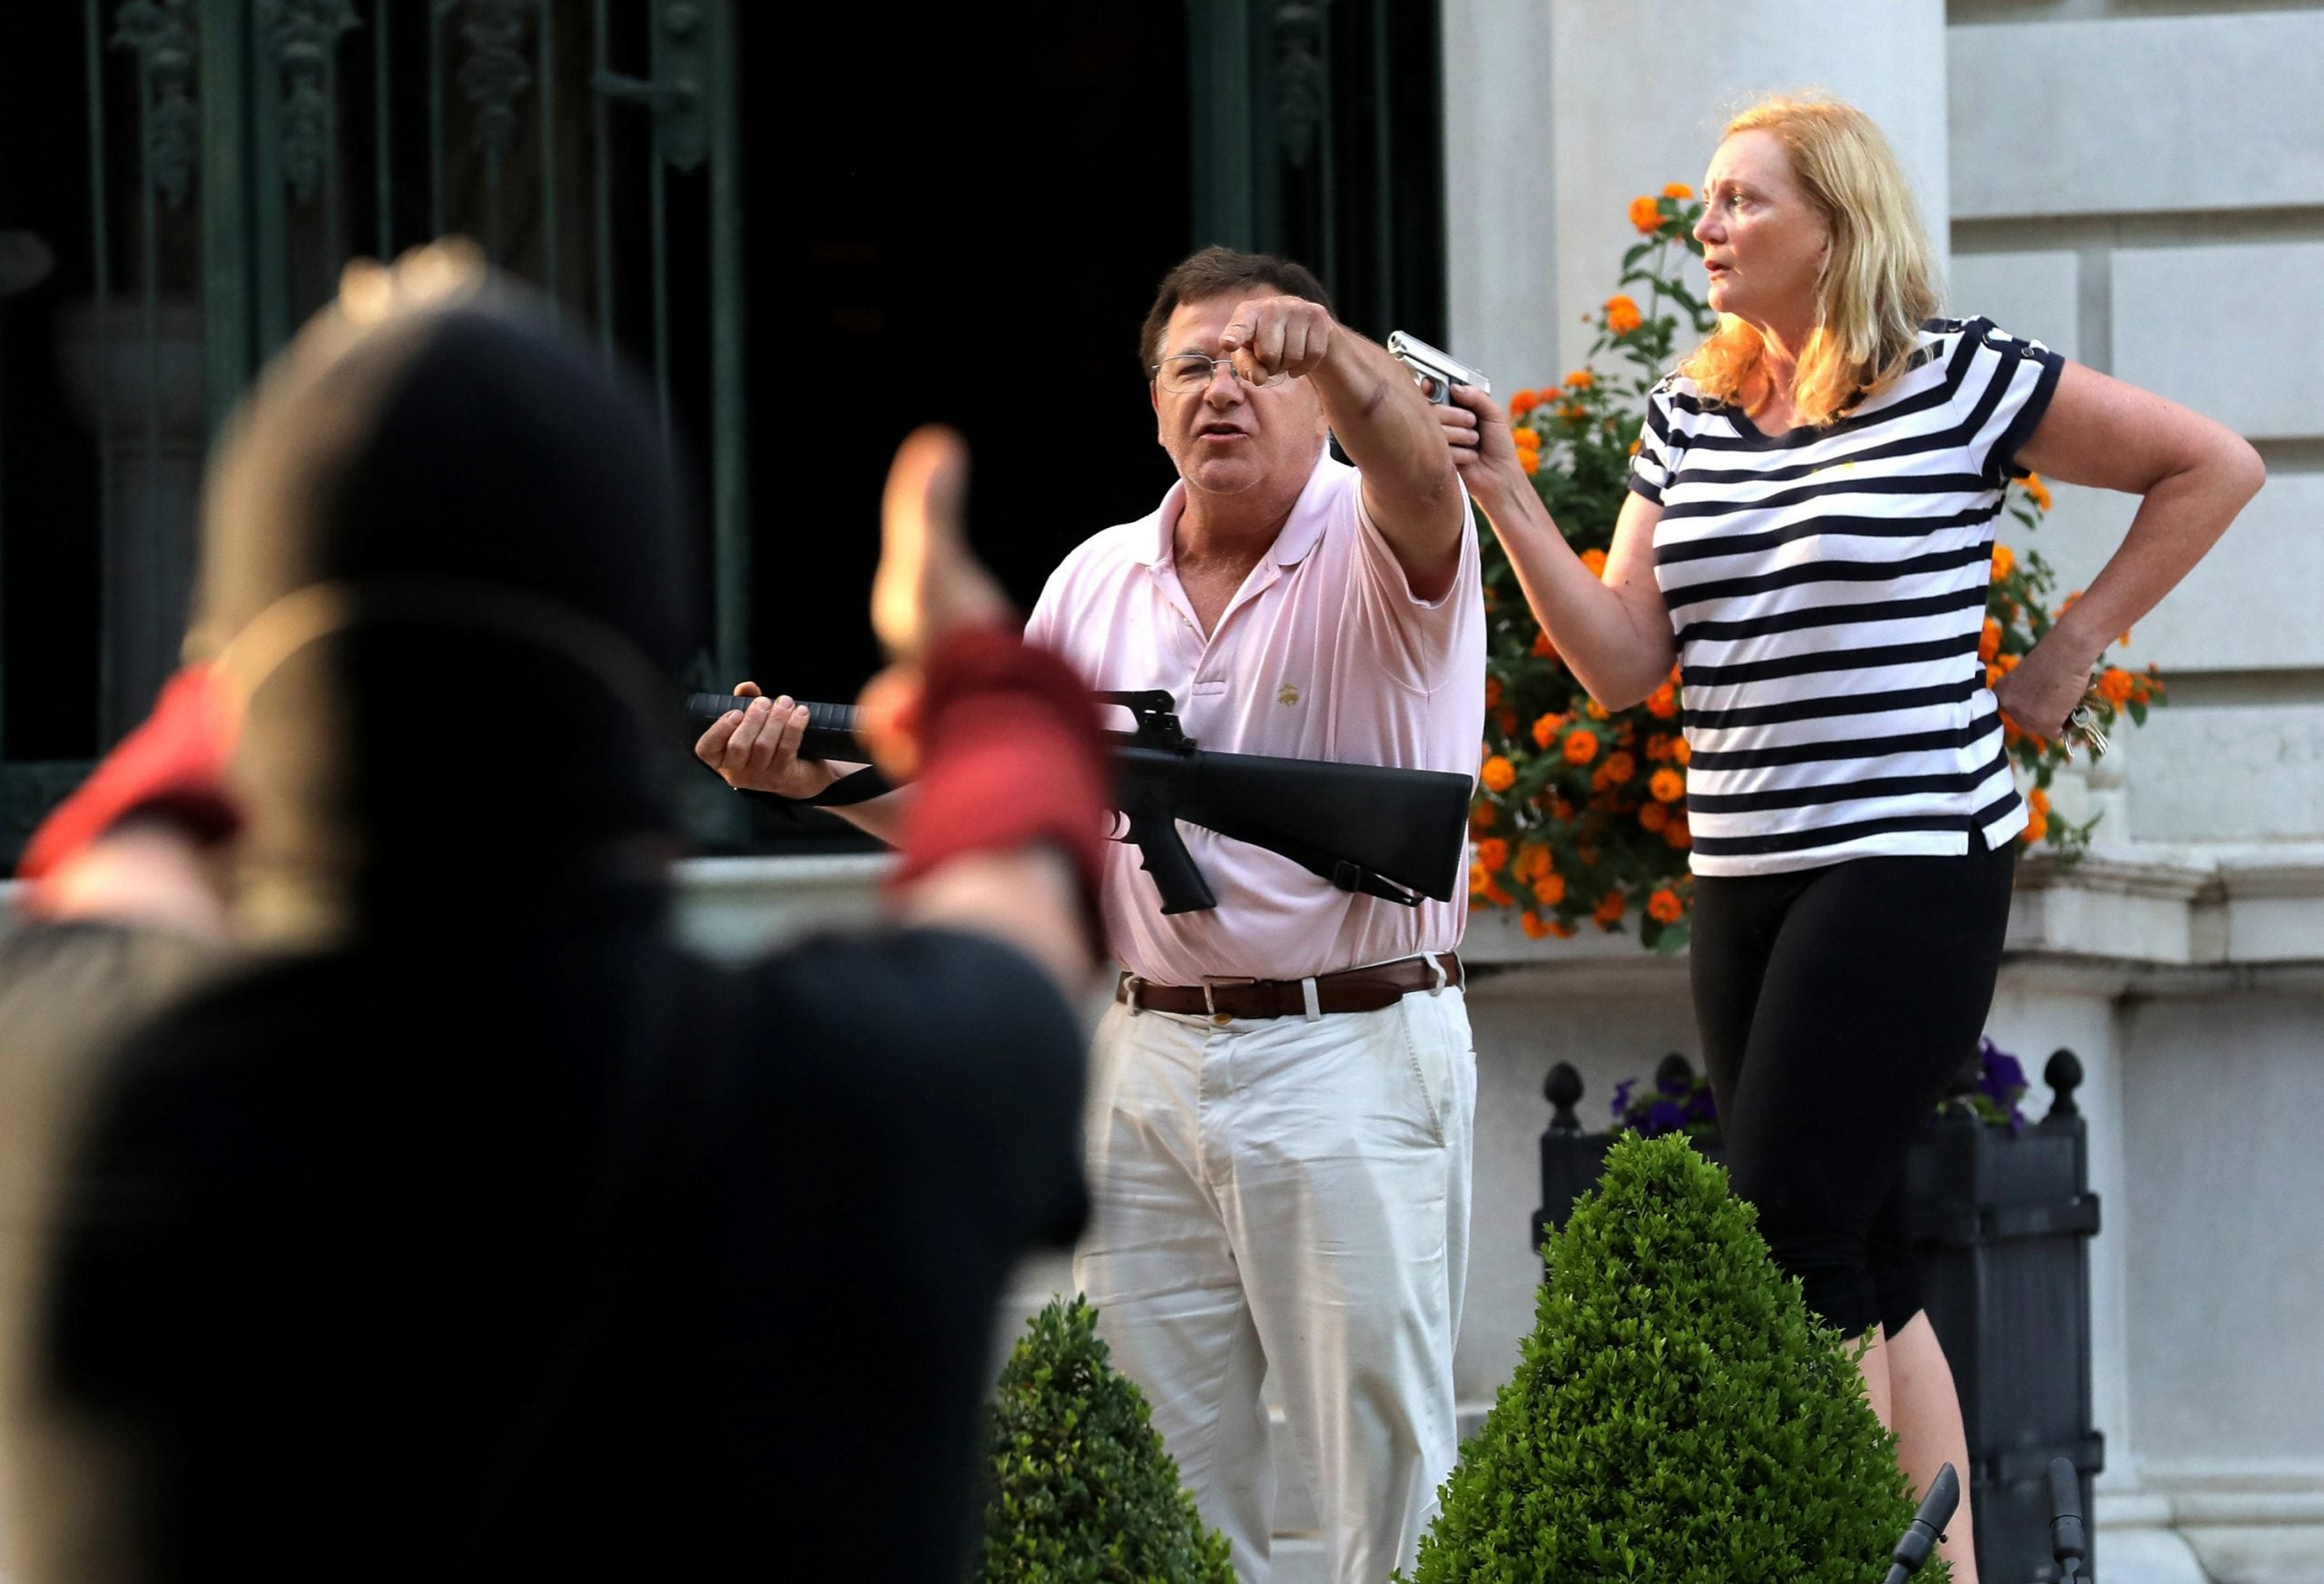 The McCloskeys, Who Pointed Guns At Protesters, To Speak At RNC